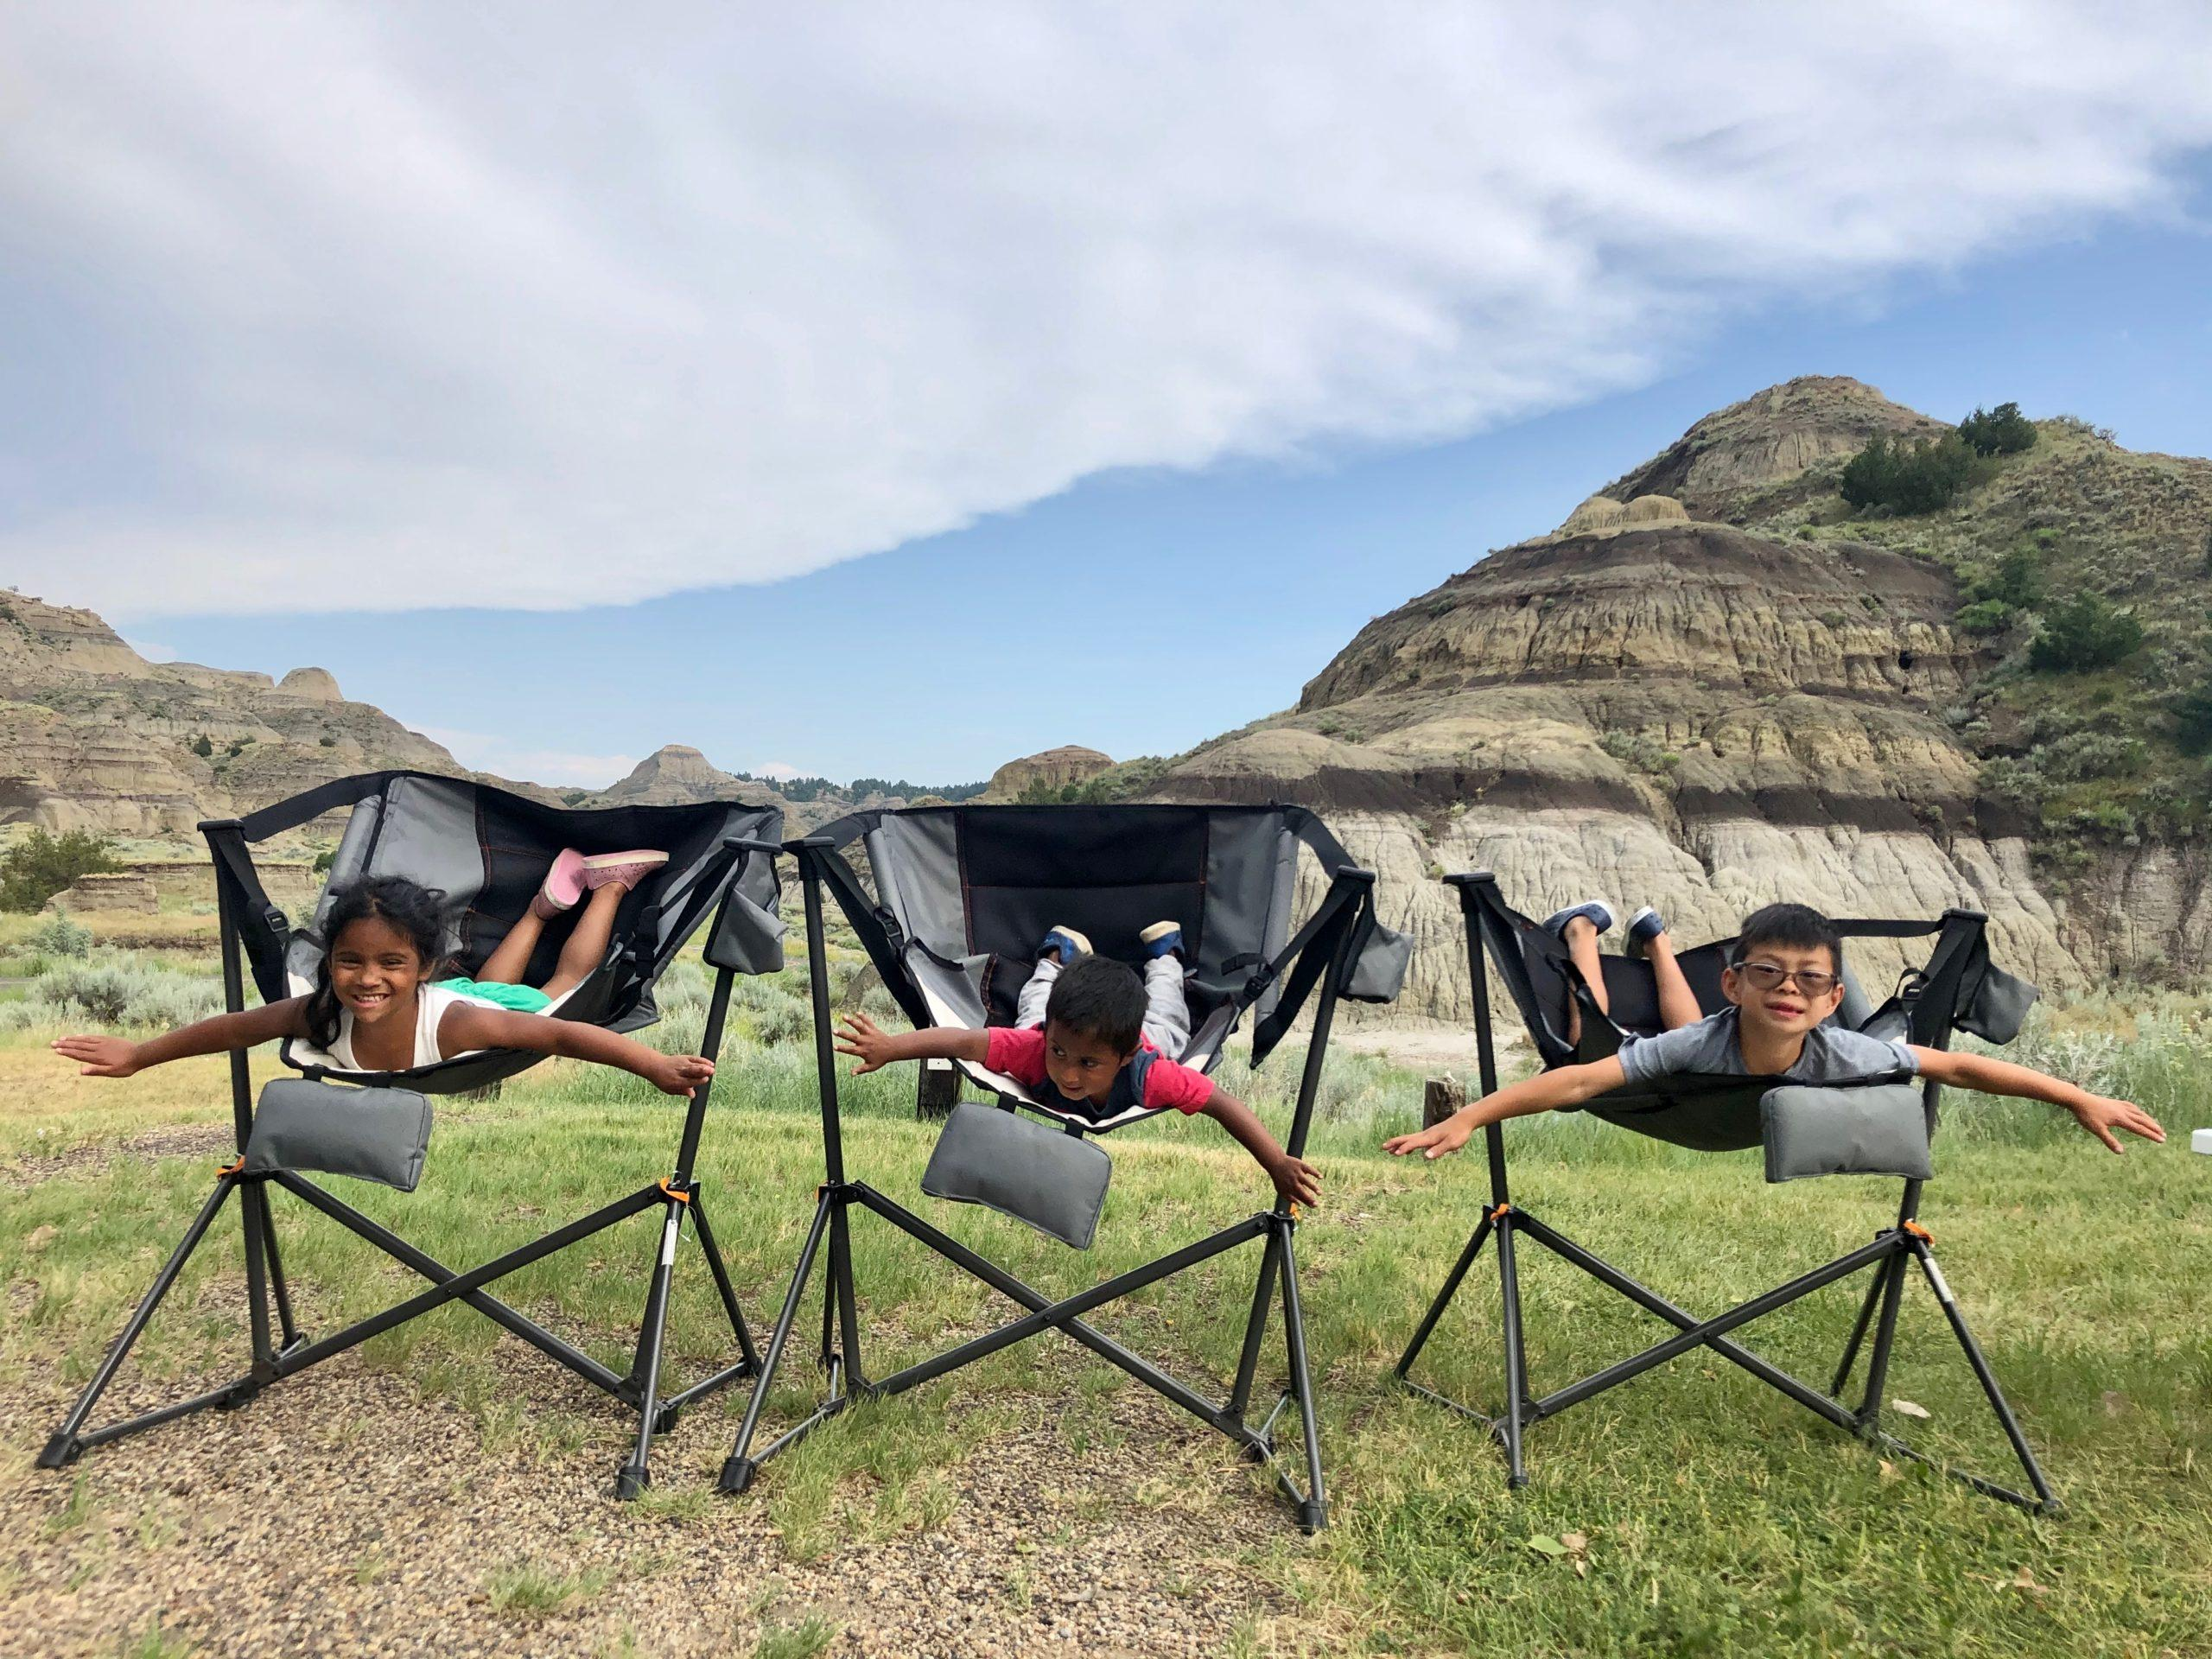 Superman-Swinging-Campsite-Chairs-1